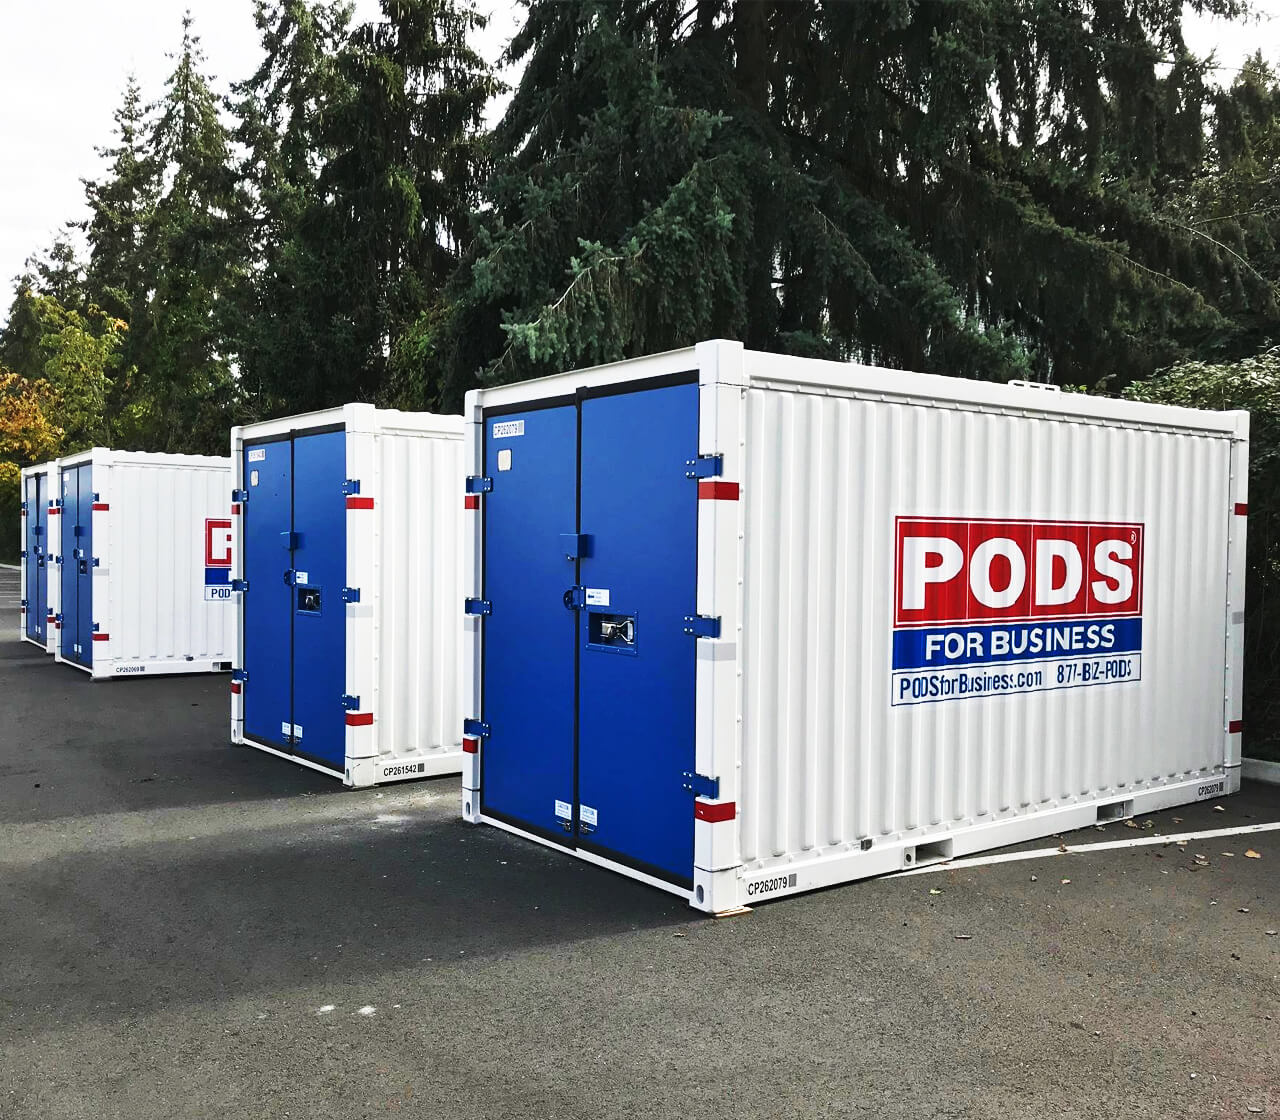 PODS onsite storage containers outdoors